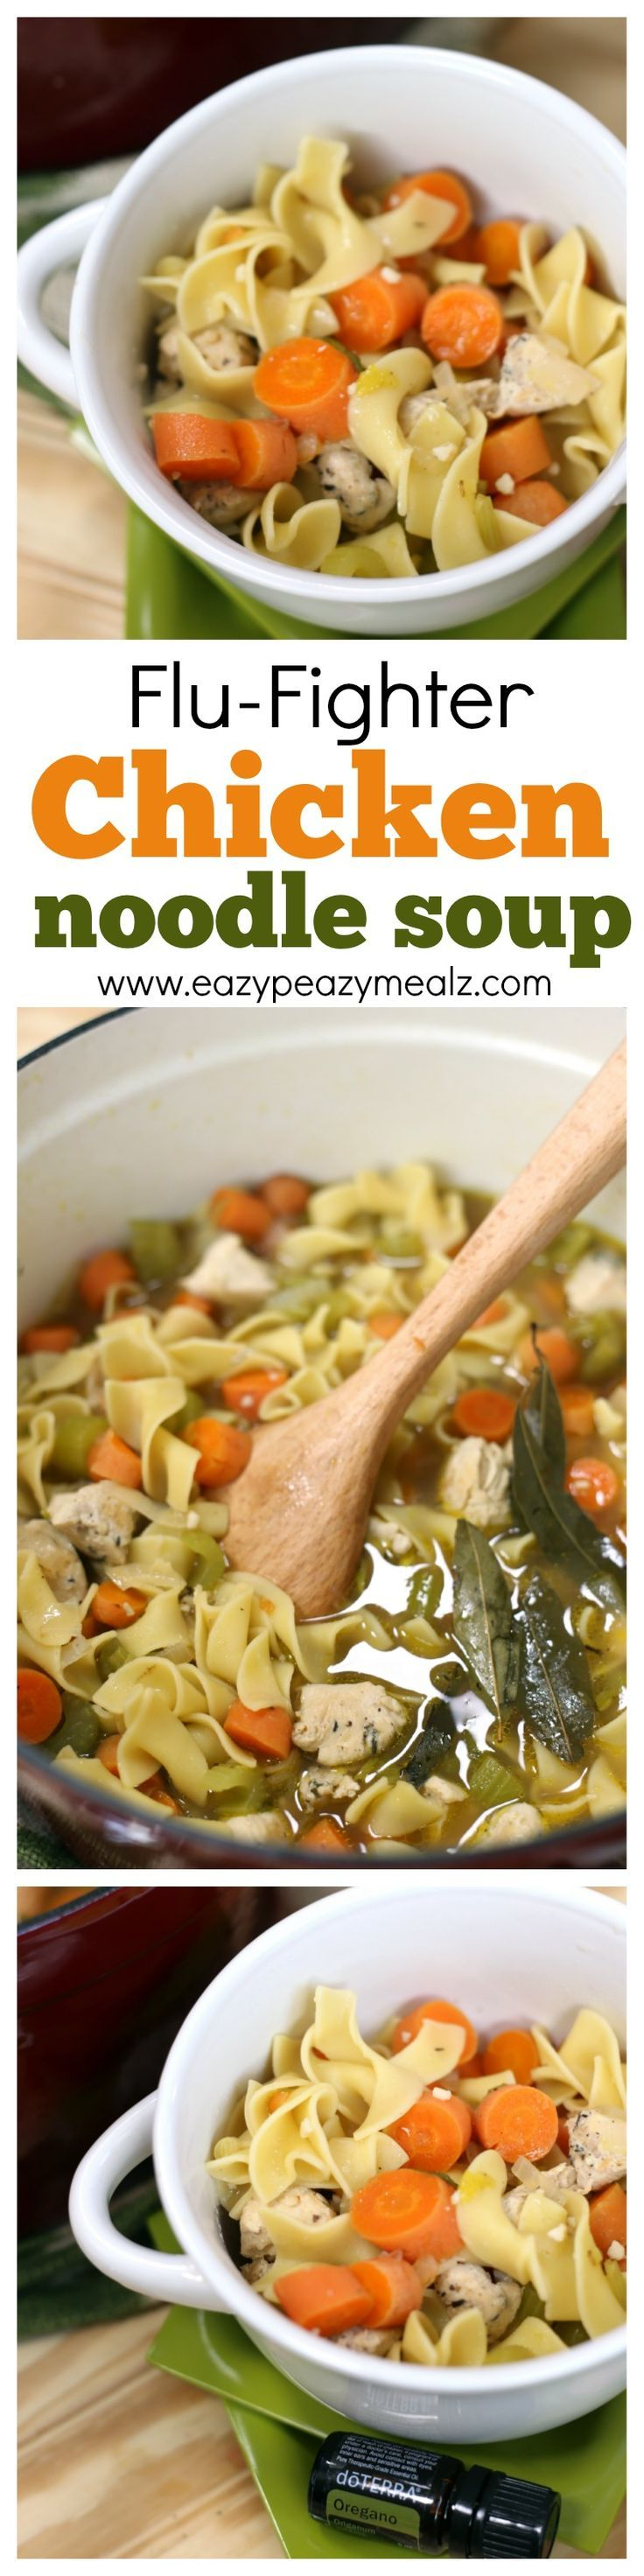 Chock full of healthy ingredients that will boost the immune system and help stave off illness, this Flu-fighter chicken noodle soup is delicious! And easy to make. #ad - Eazy Peazy Mealz